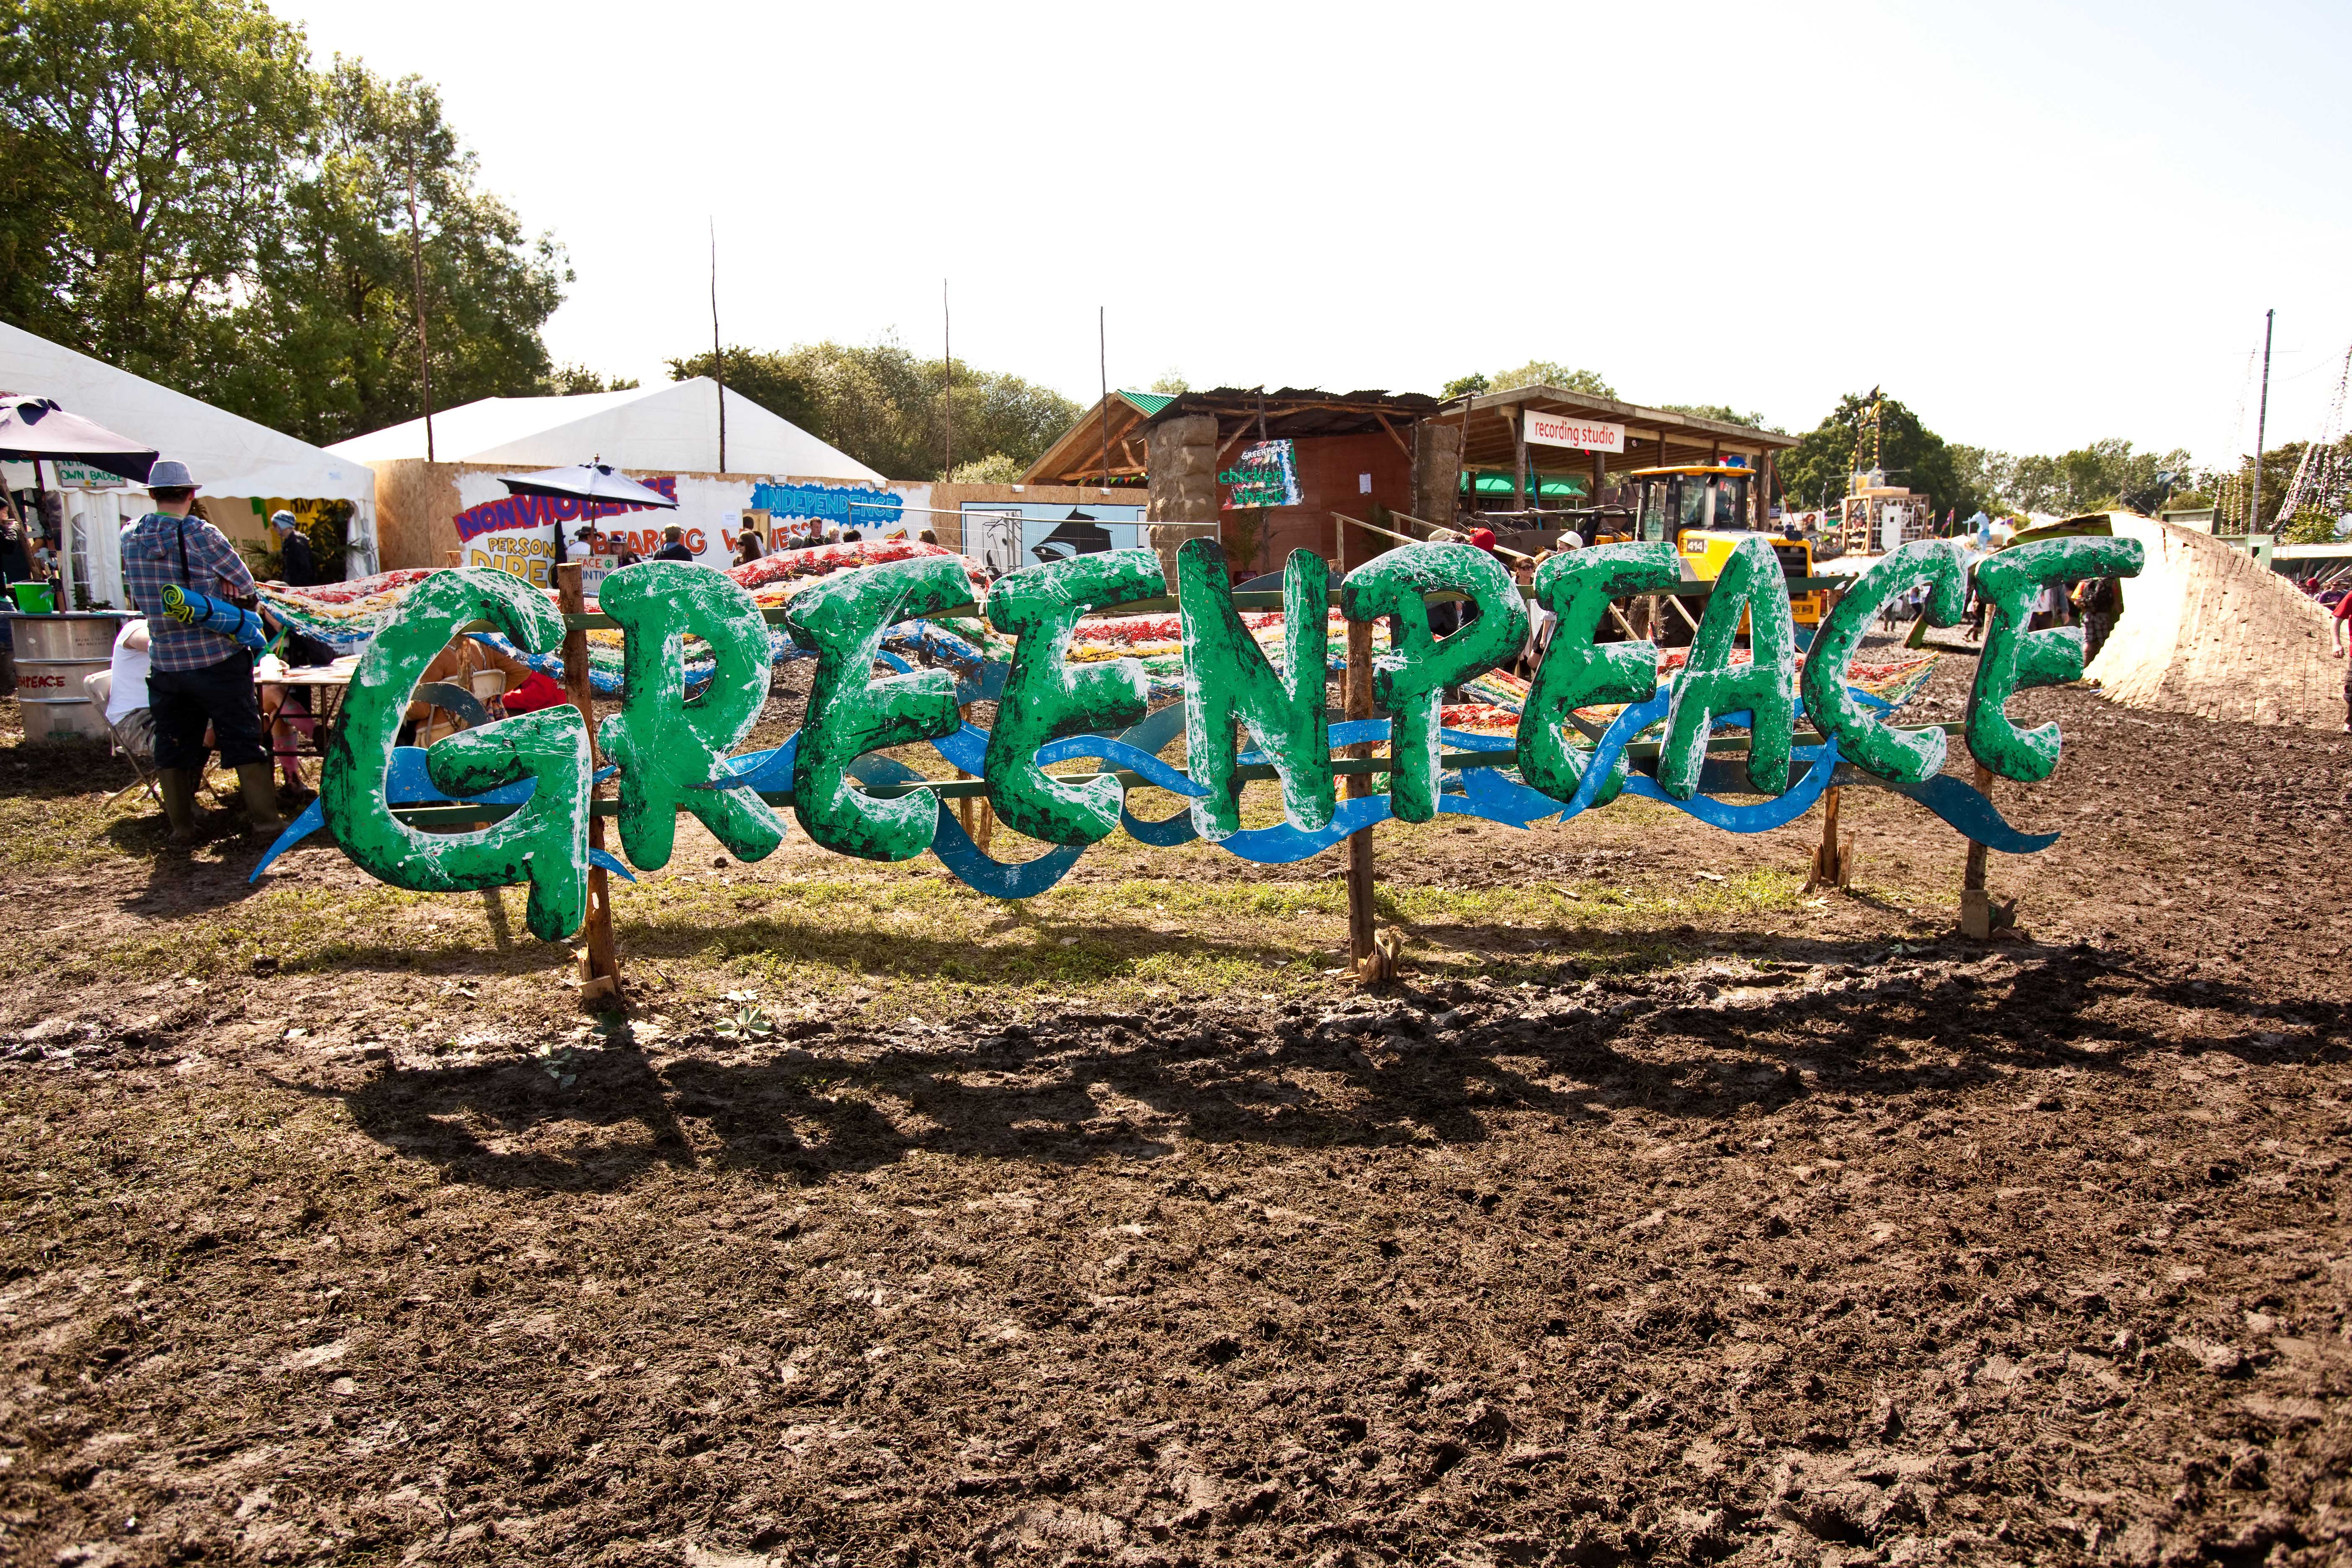 The festival works with a number of charities, including Greenpeace